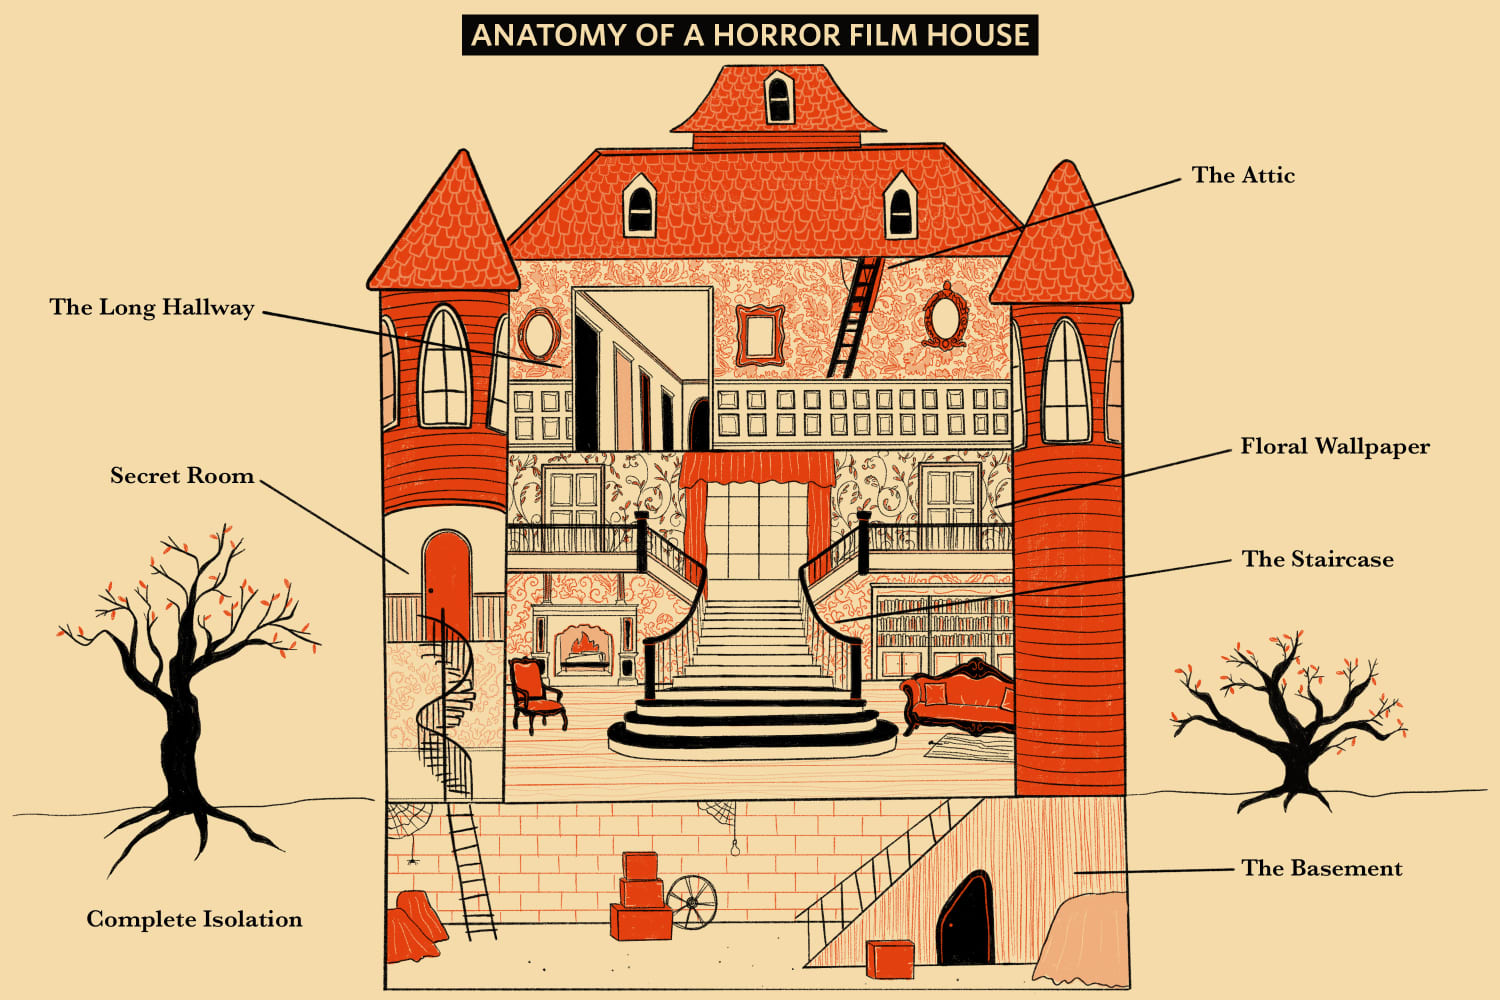 8 Things You'll Find In Every Horror Film House